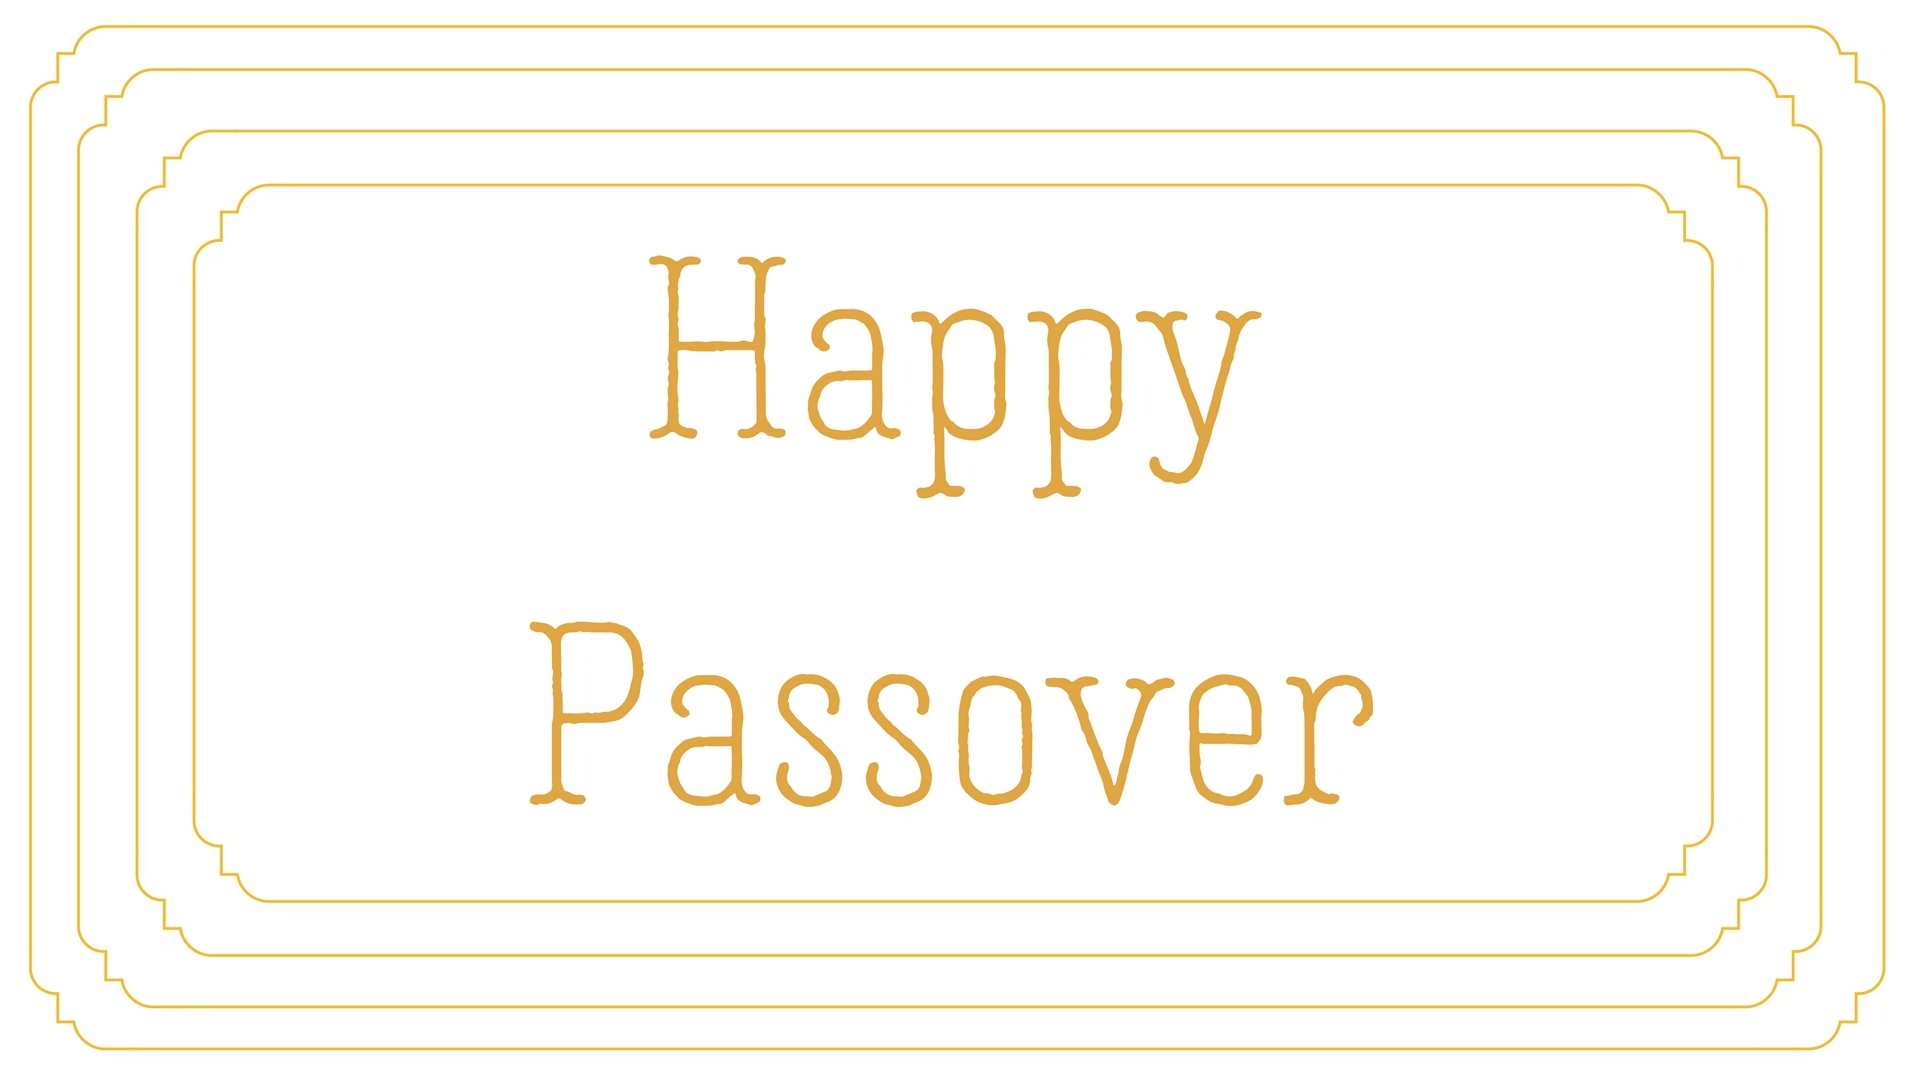 Happy Passover Rectangle Frame Greeting Card Postcard 20